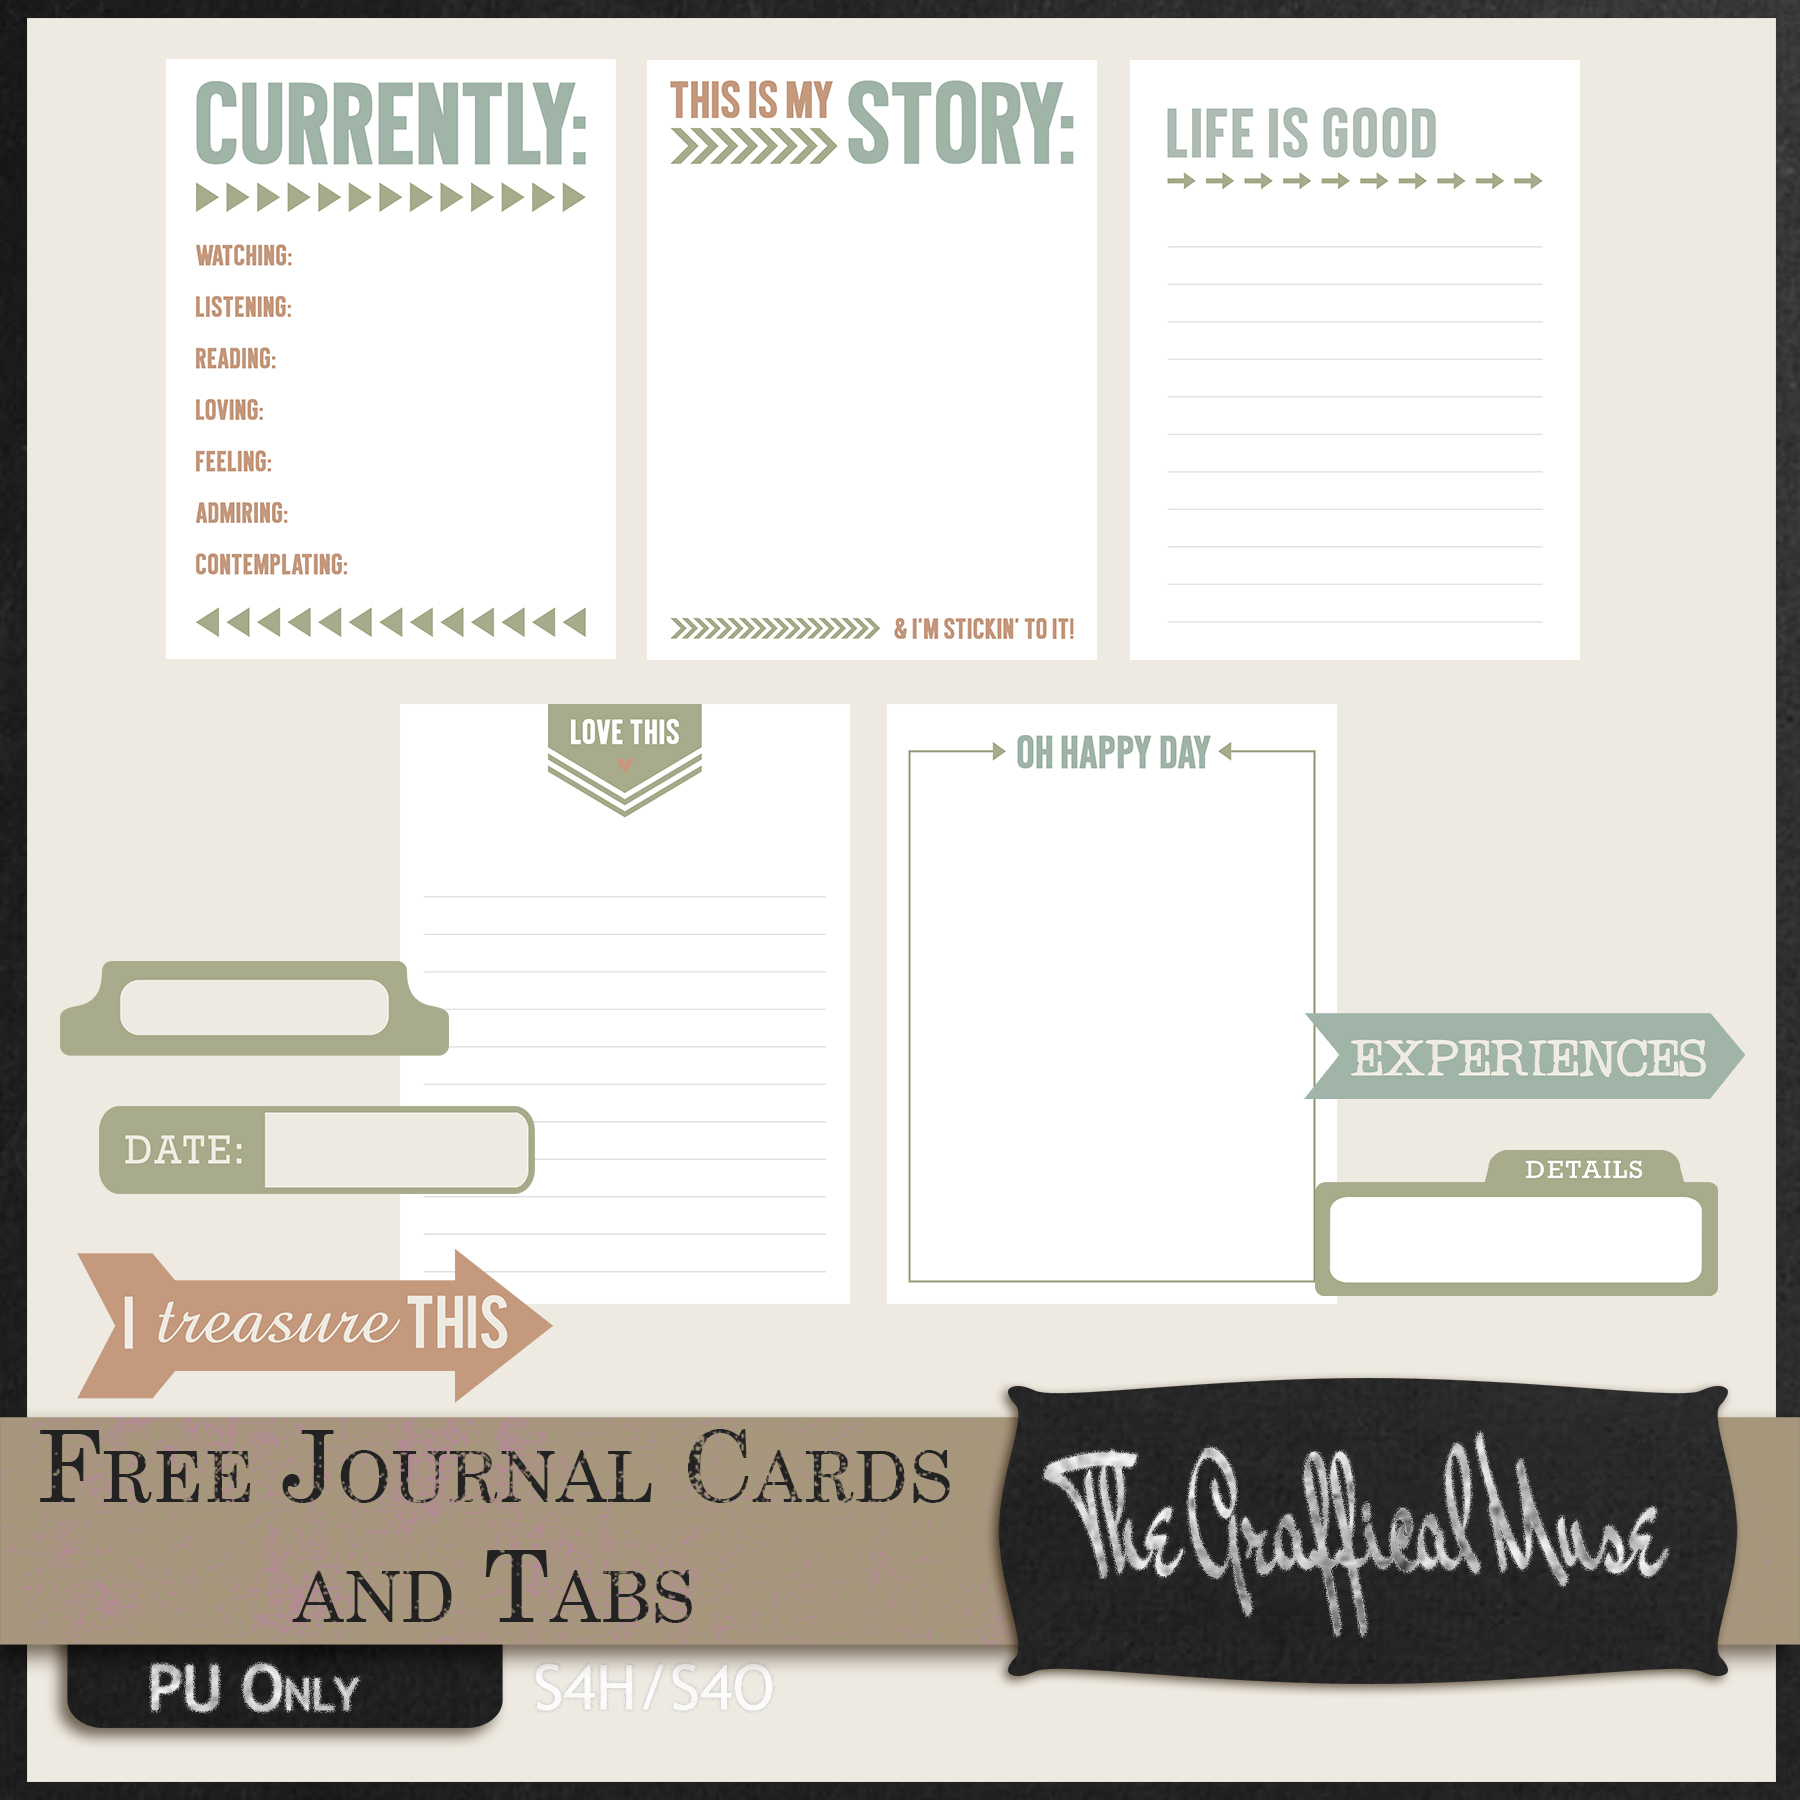 It's just a photo of Free Printable Journaling Cards with regard to motivational